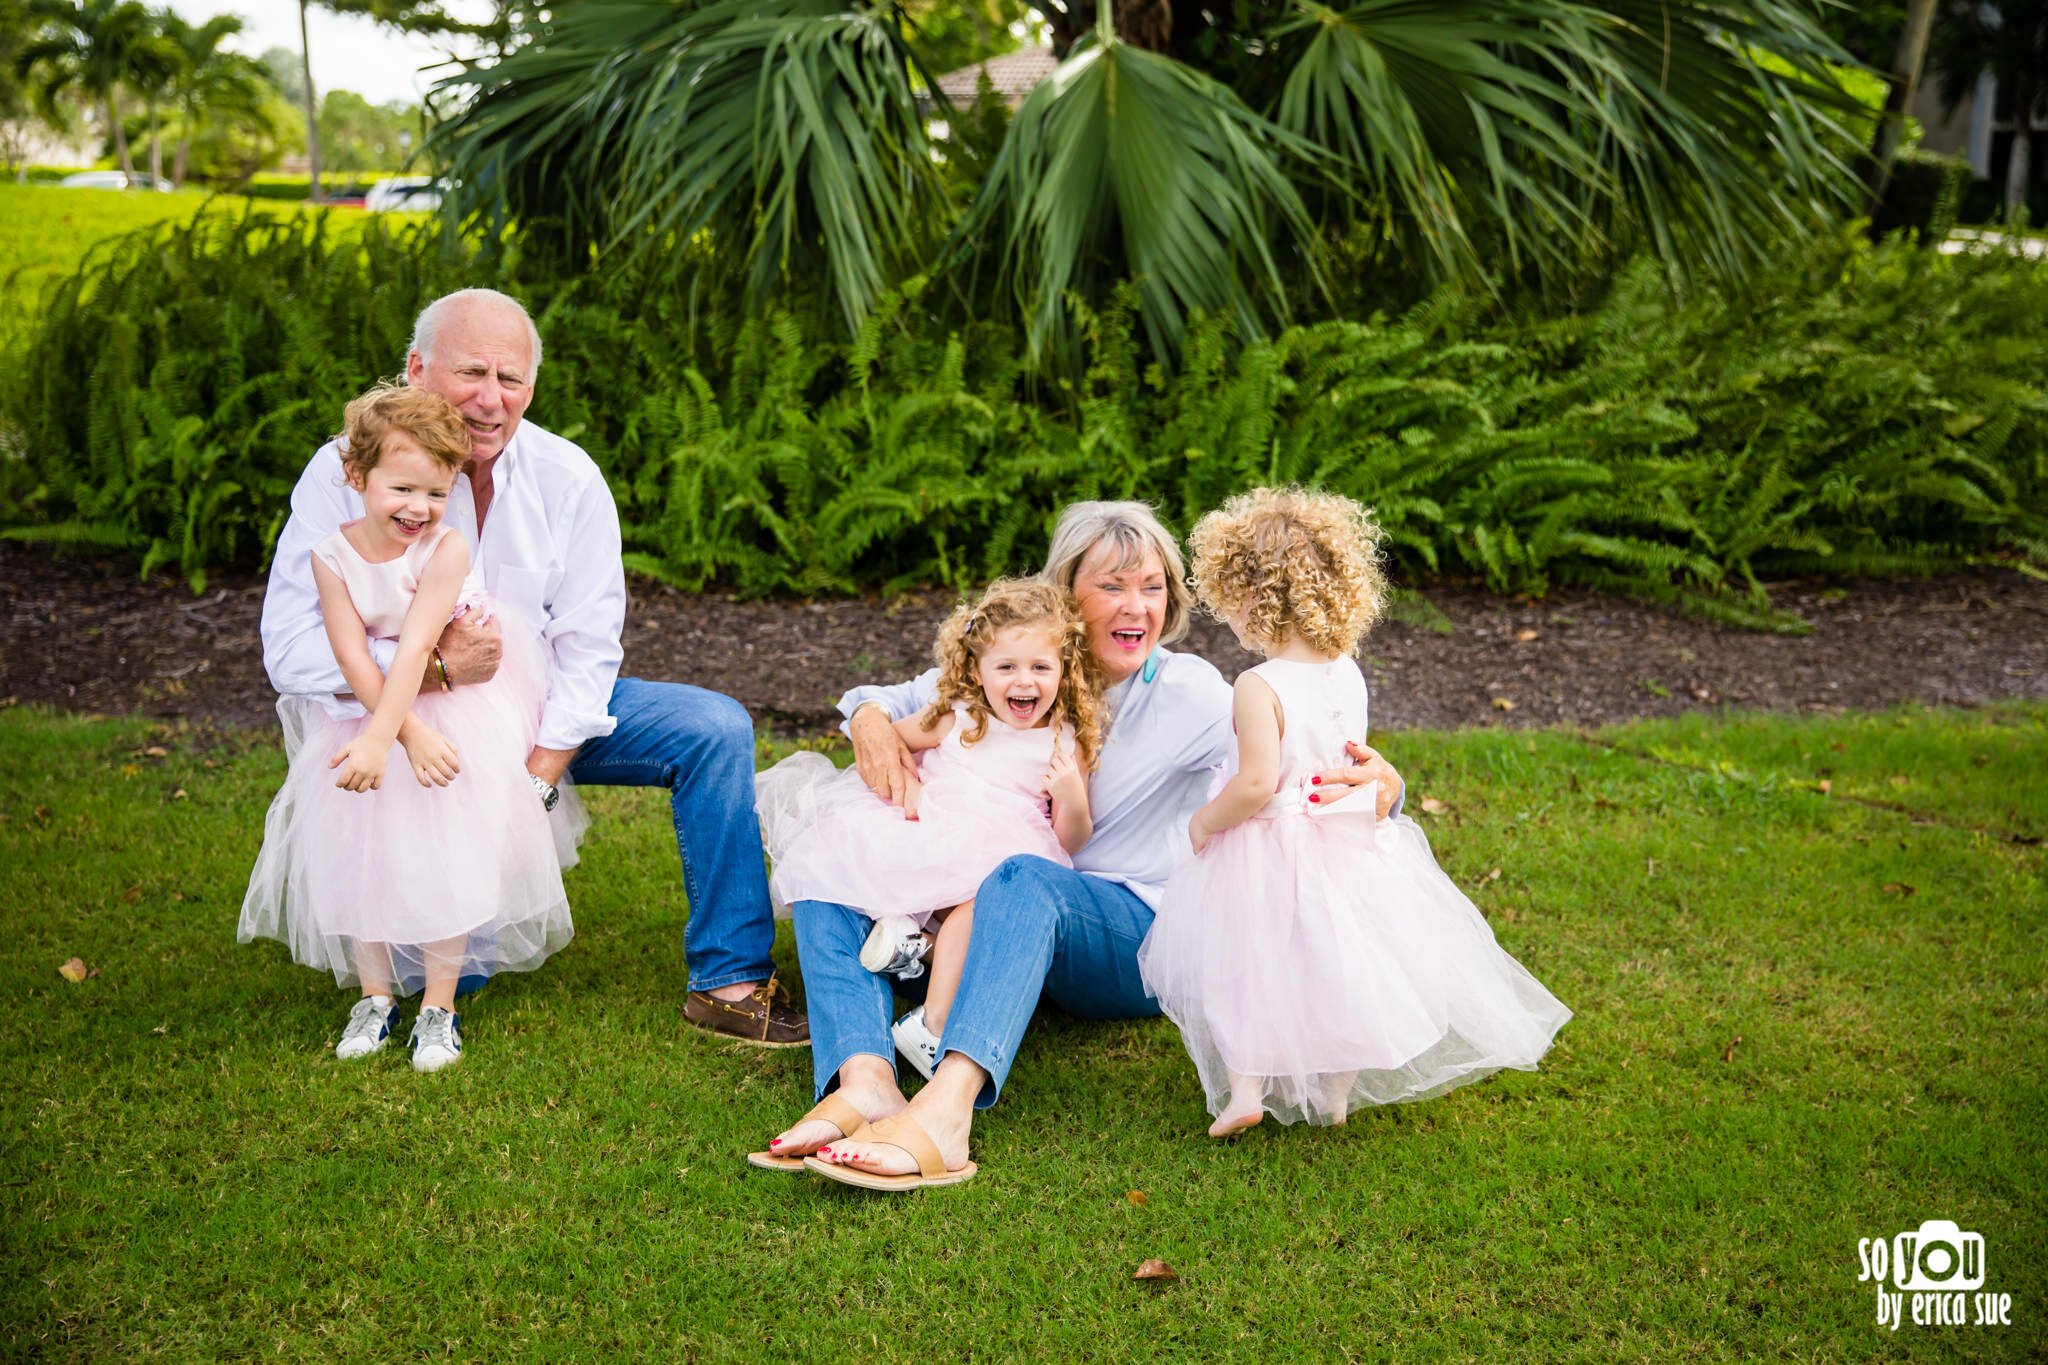 so-you-by-erica-sue-south-florida-extended-family-lifestyle-photo-session-2151.JPG